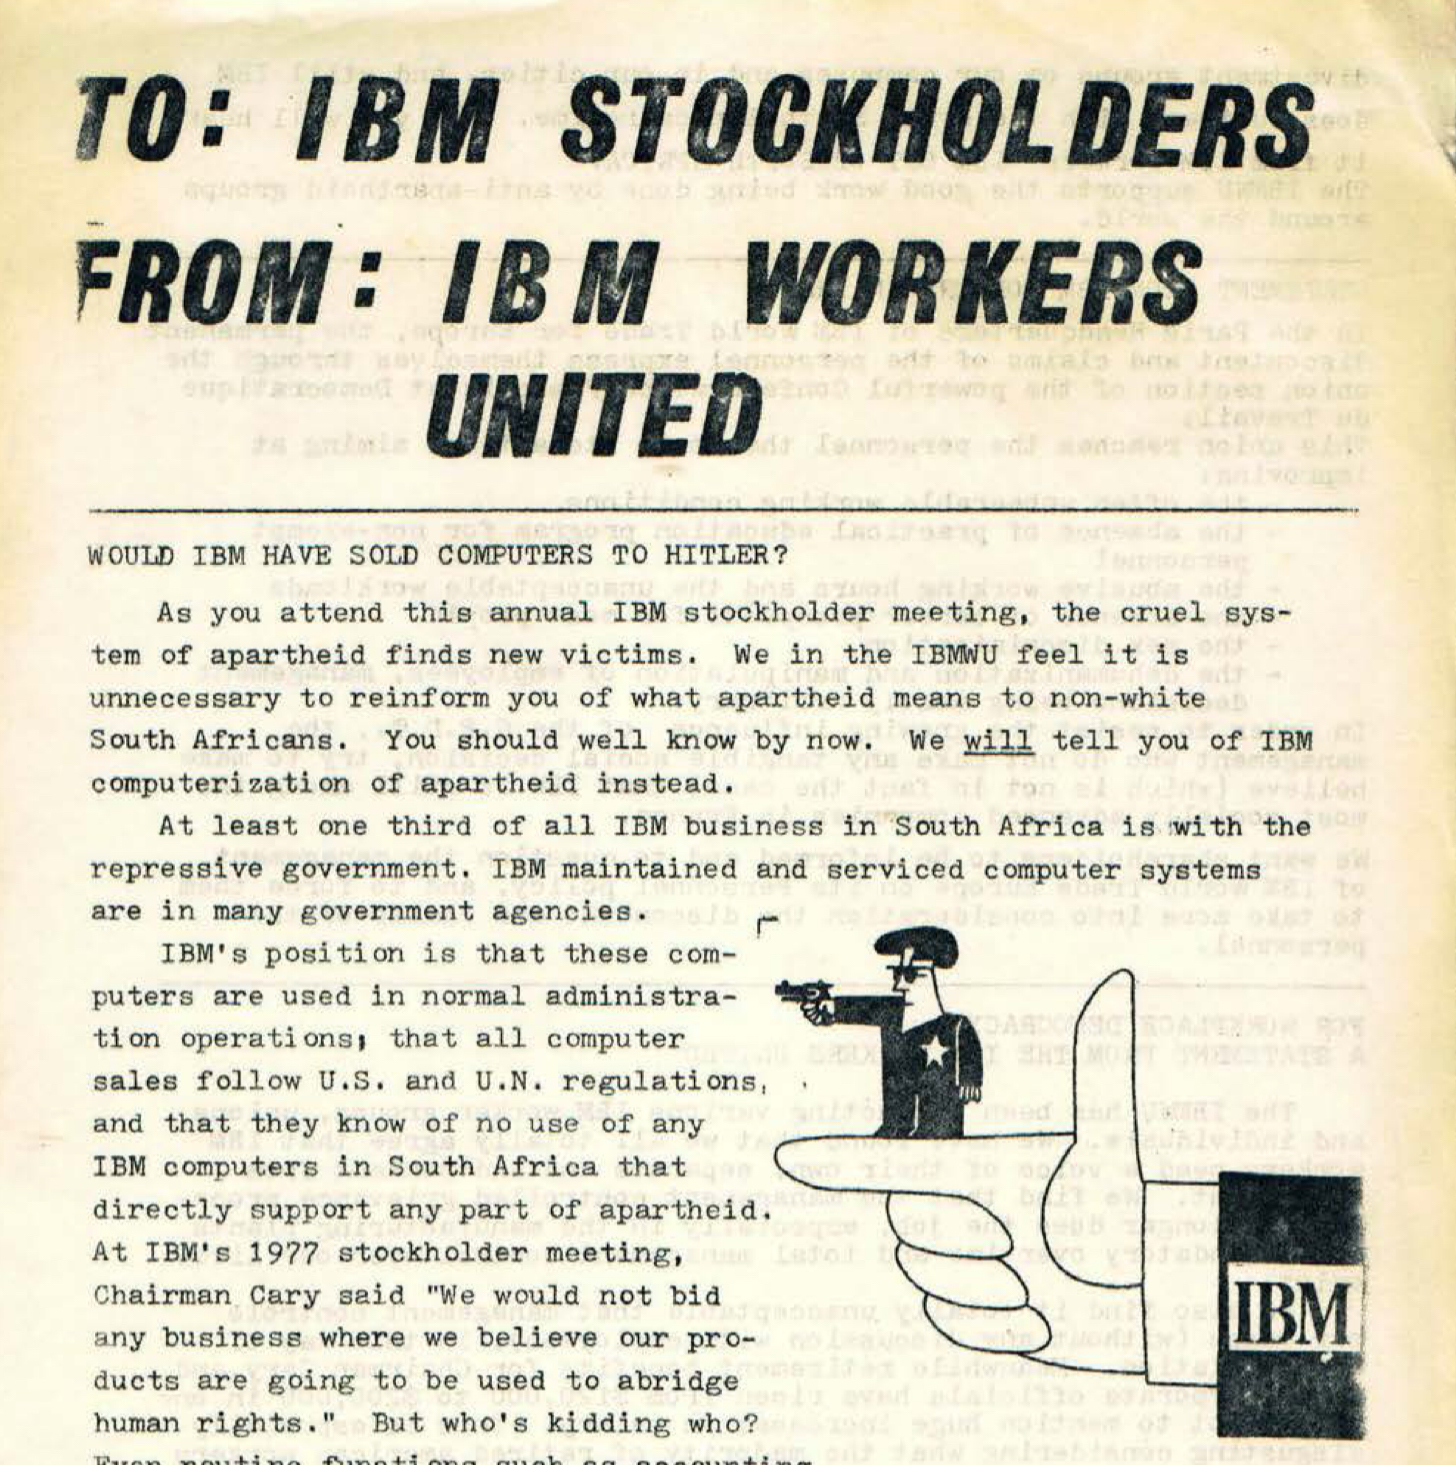 Scanned leaflet with the headings TO: IBM STOCCKHOLDERS, FROM: IBM WORKERS UNITED, WOULD IBM HAVE SOLD COMPUTERS TO HITLER?